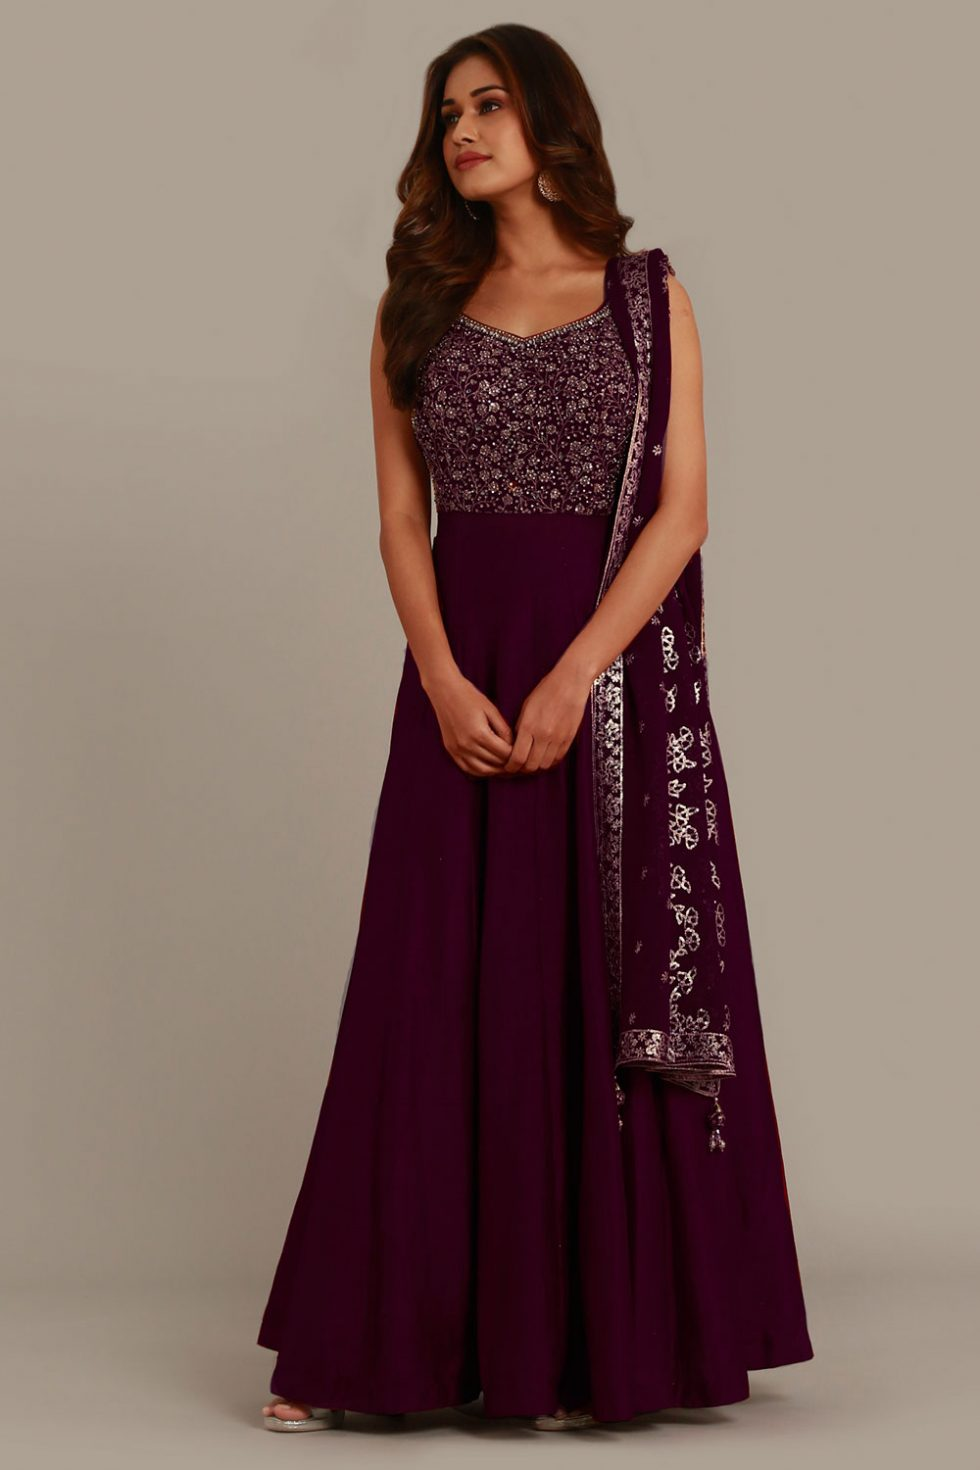 Wine purple Anarkali gown set with matching dupatta and gold embellishments